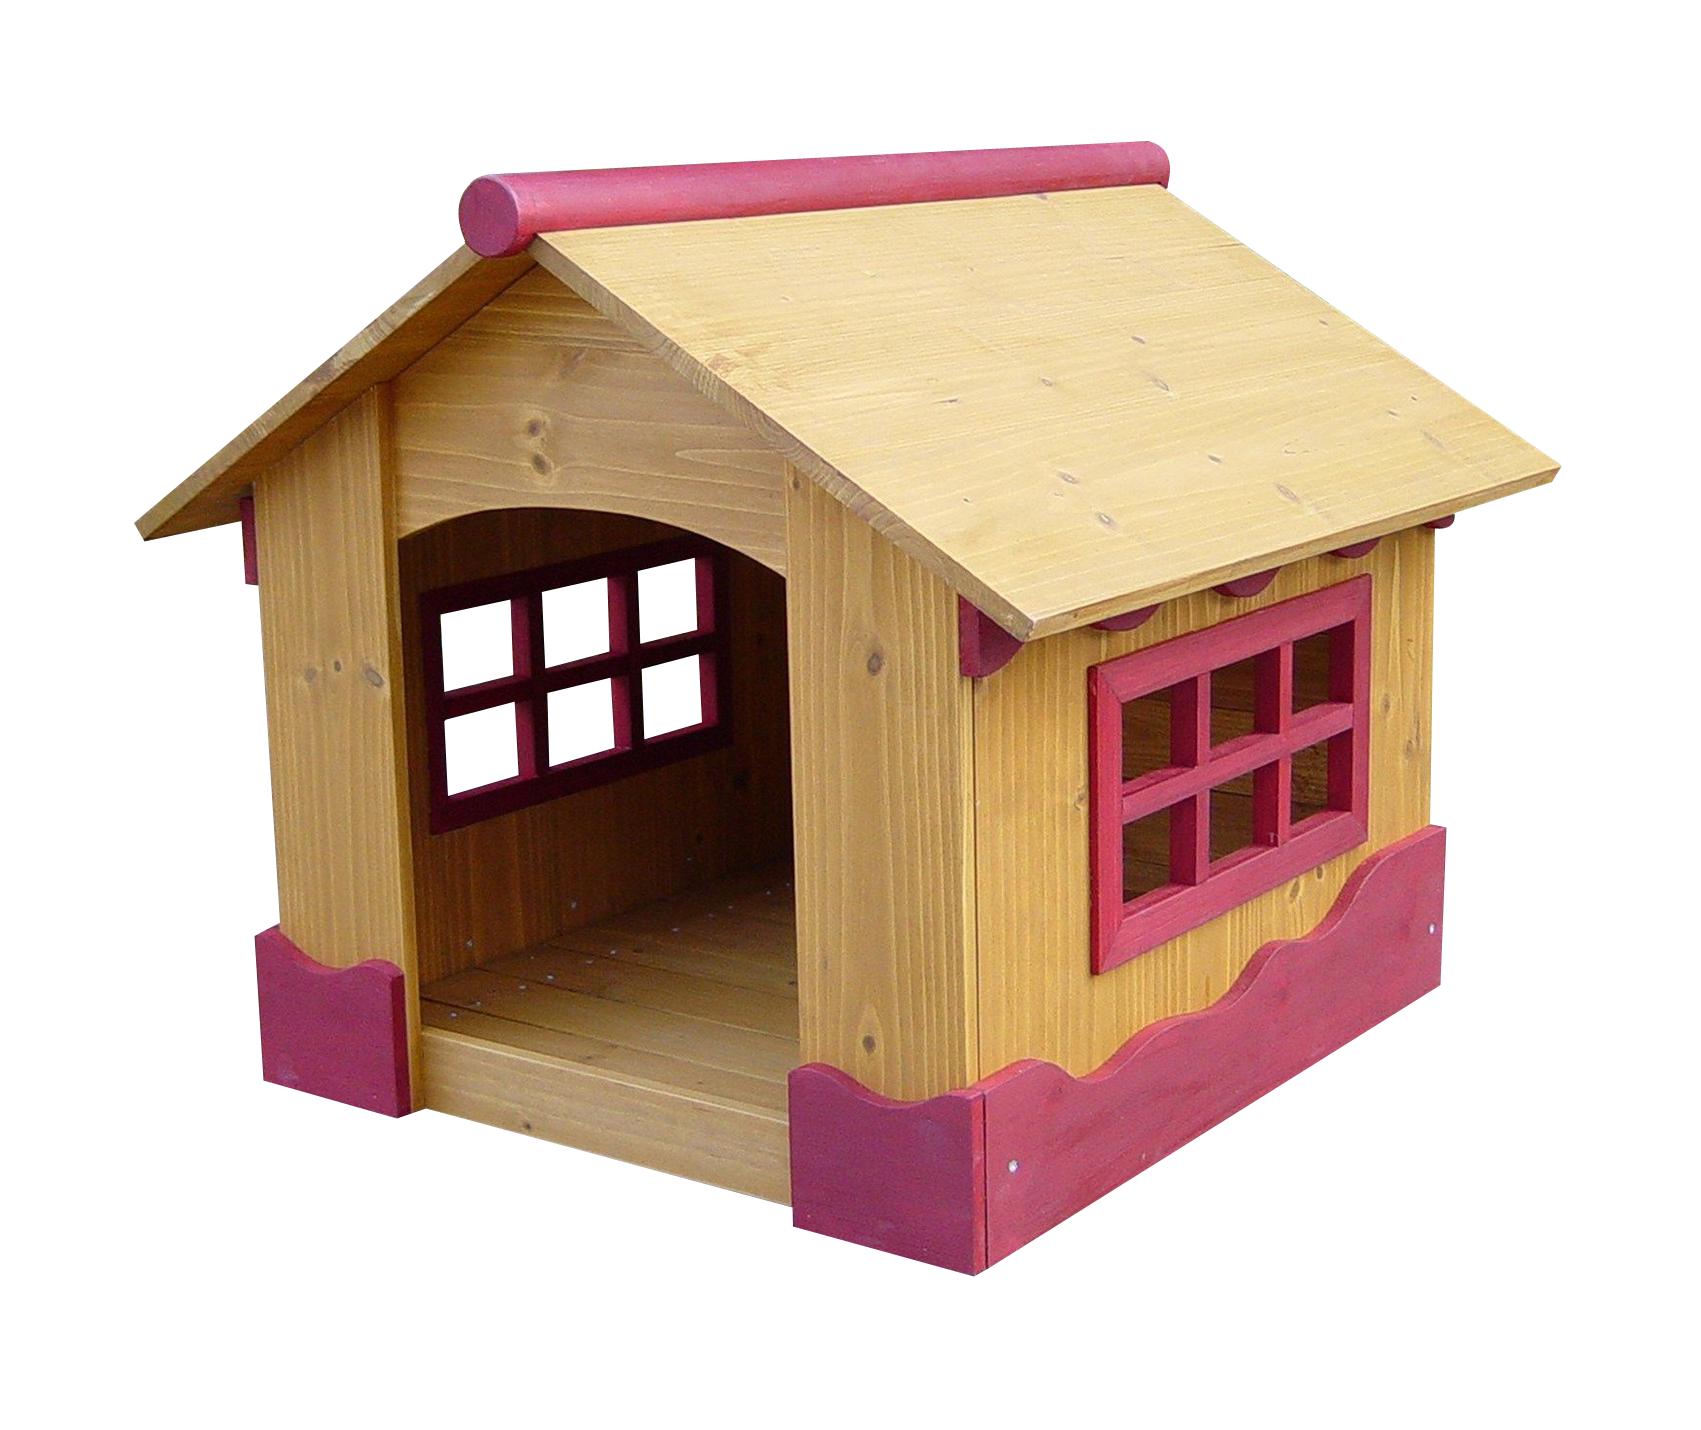 Dog House Png Image Dog House Wooden Cat House Outdoor Cat House